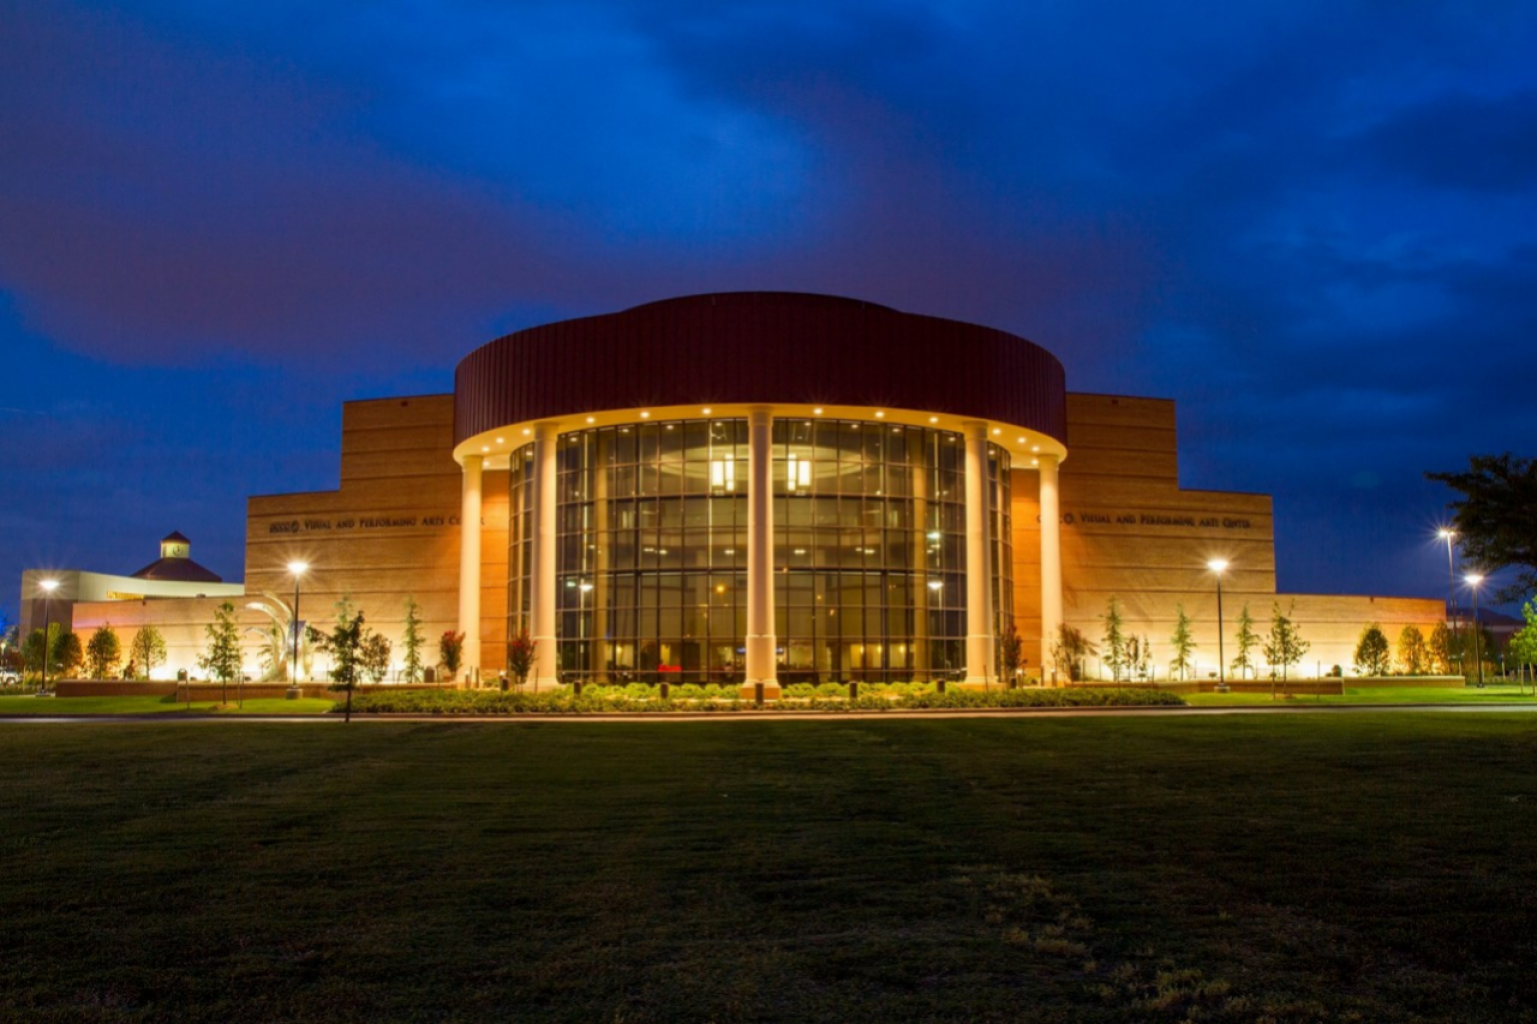 OCCC VISUAL AND PERFORMING ARTS CENTER  REOPENS WITH HYBRID SEASON